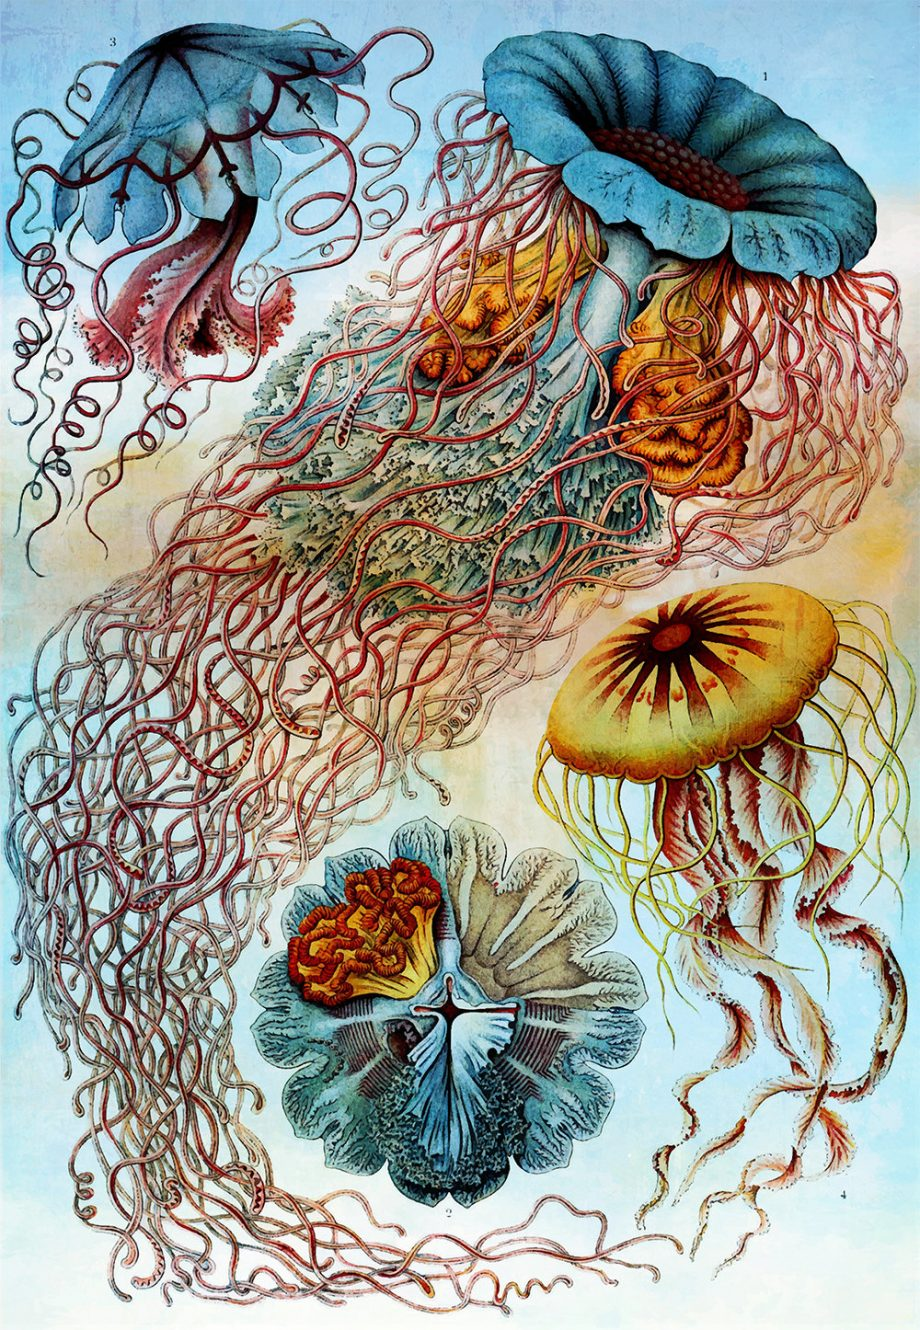 Ernst Haeckel Discomedusae Print Jellyfish Art Vintage Nautical Decor Ocean Wall Art - Giclee Print on Cotton Canvas and Paper Canvas